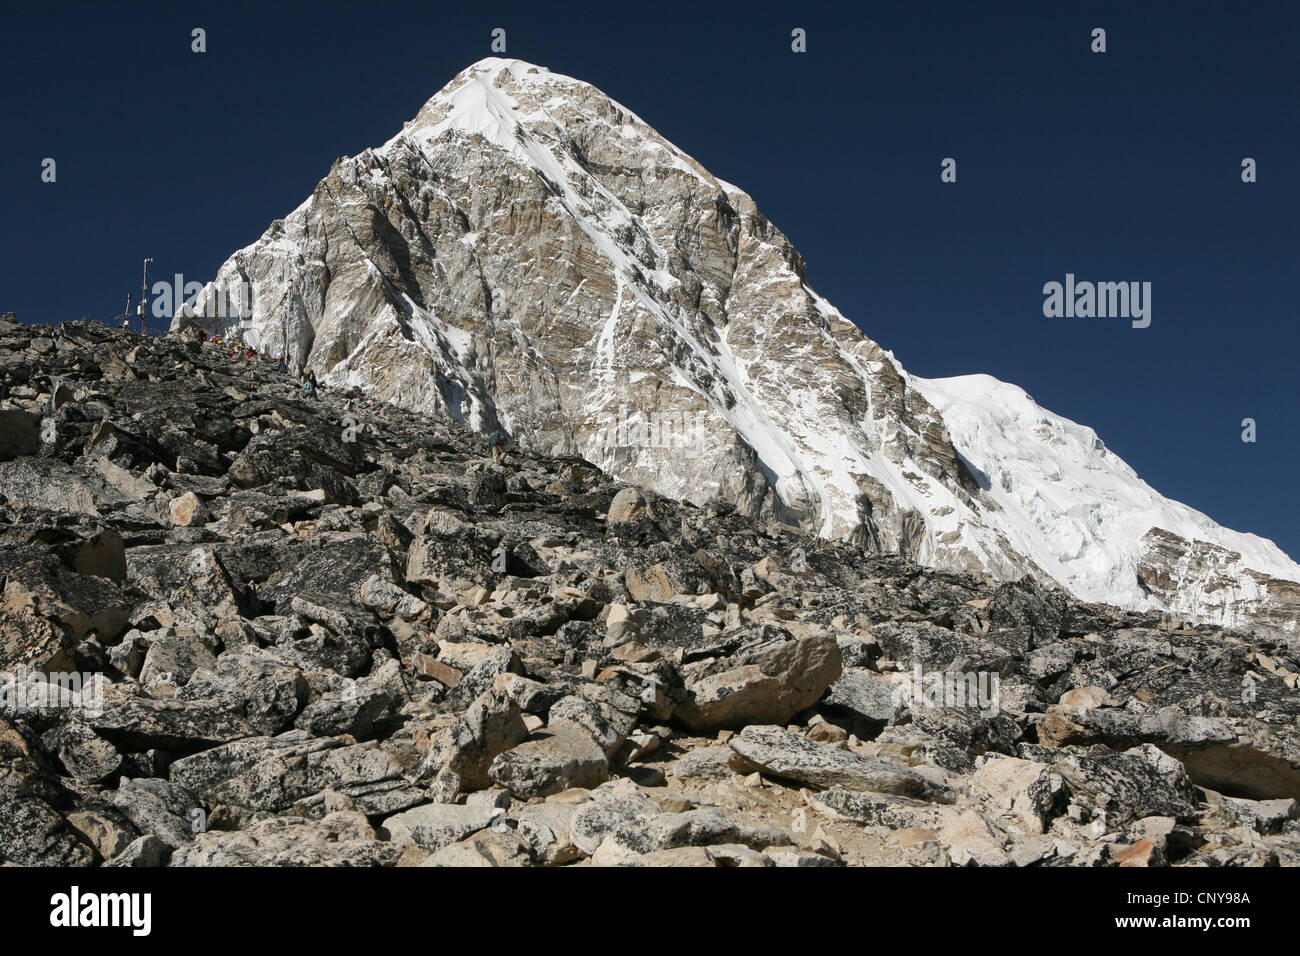 Mount Pumori (7,161 m) in Khumbu region in the Himalayas, Nepal. Mount Kala Patthar (5,545 m) seen at the left. - Stock Image